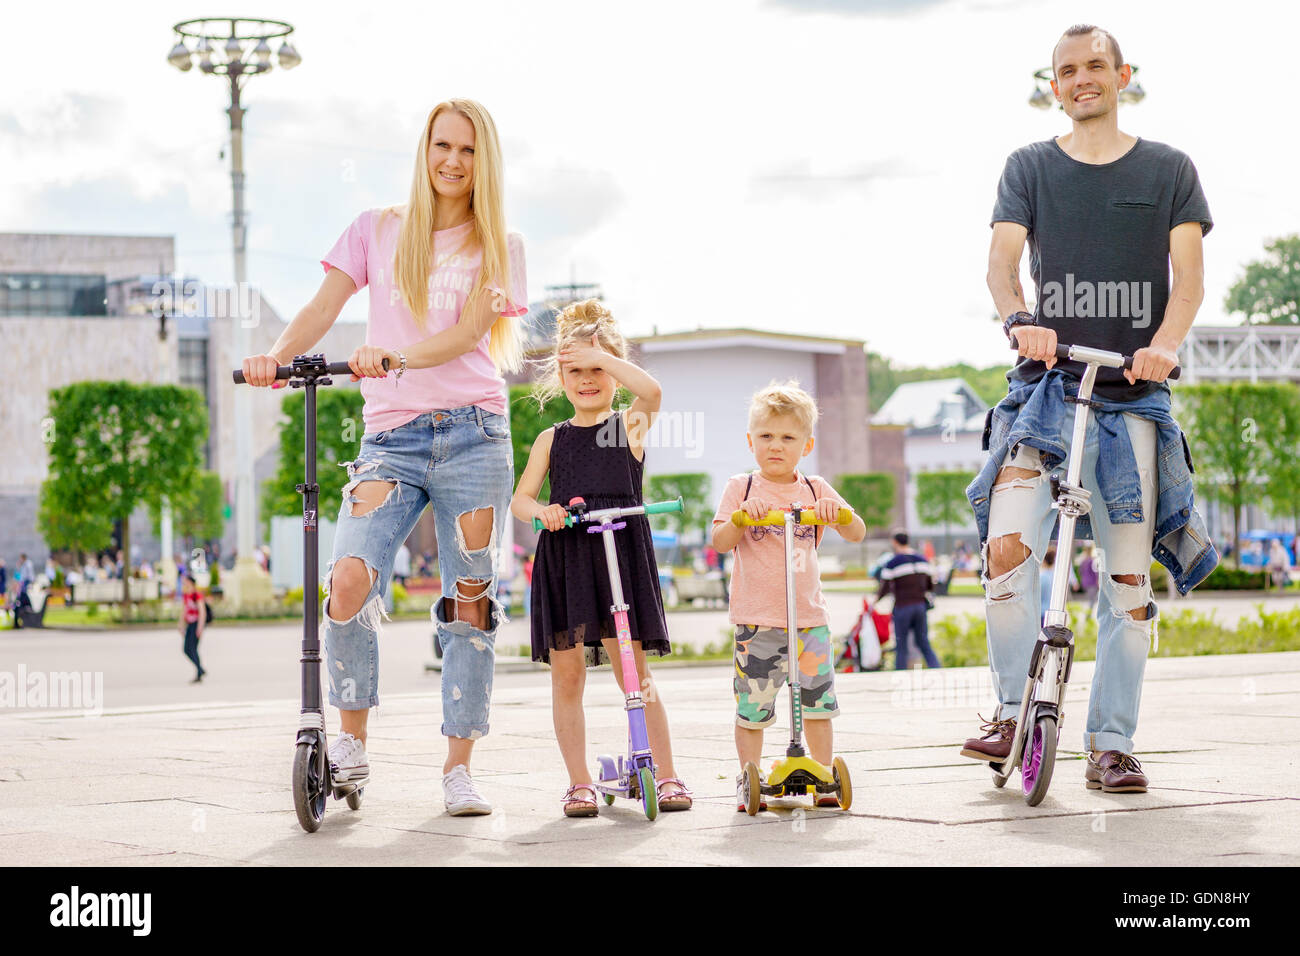 Young modern family with scateboard scooter. - Stock Image